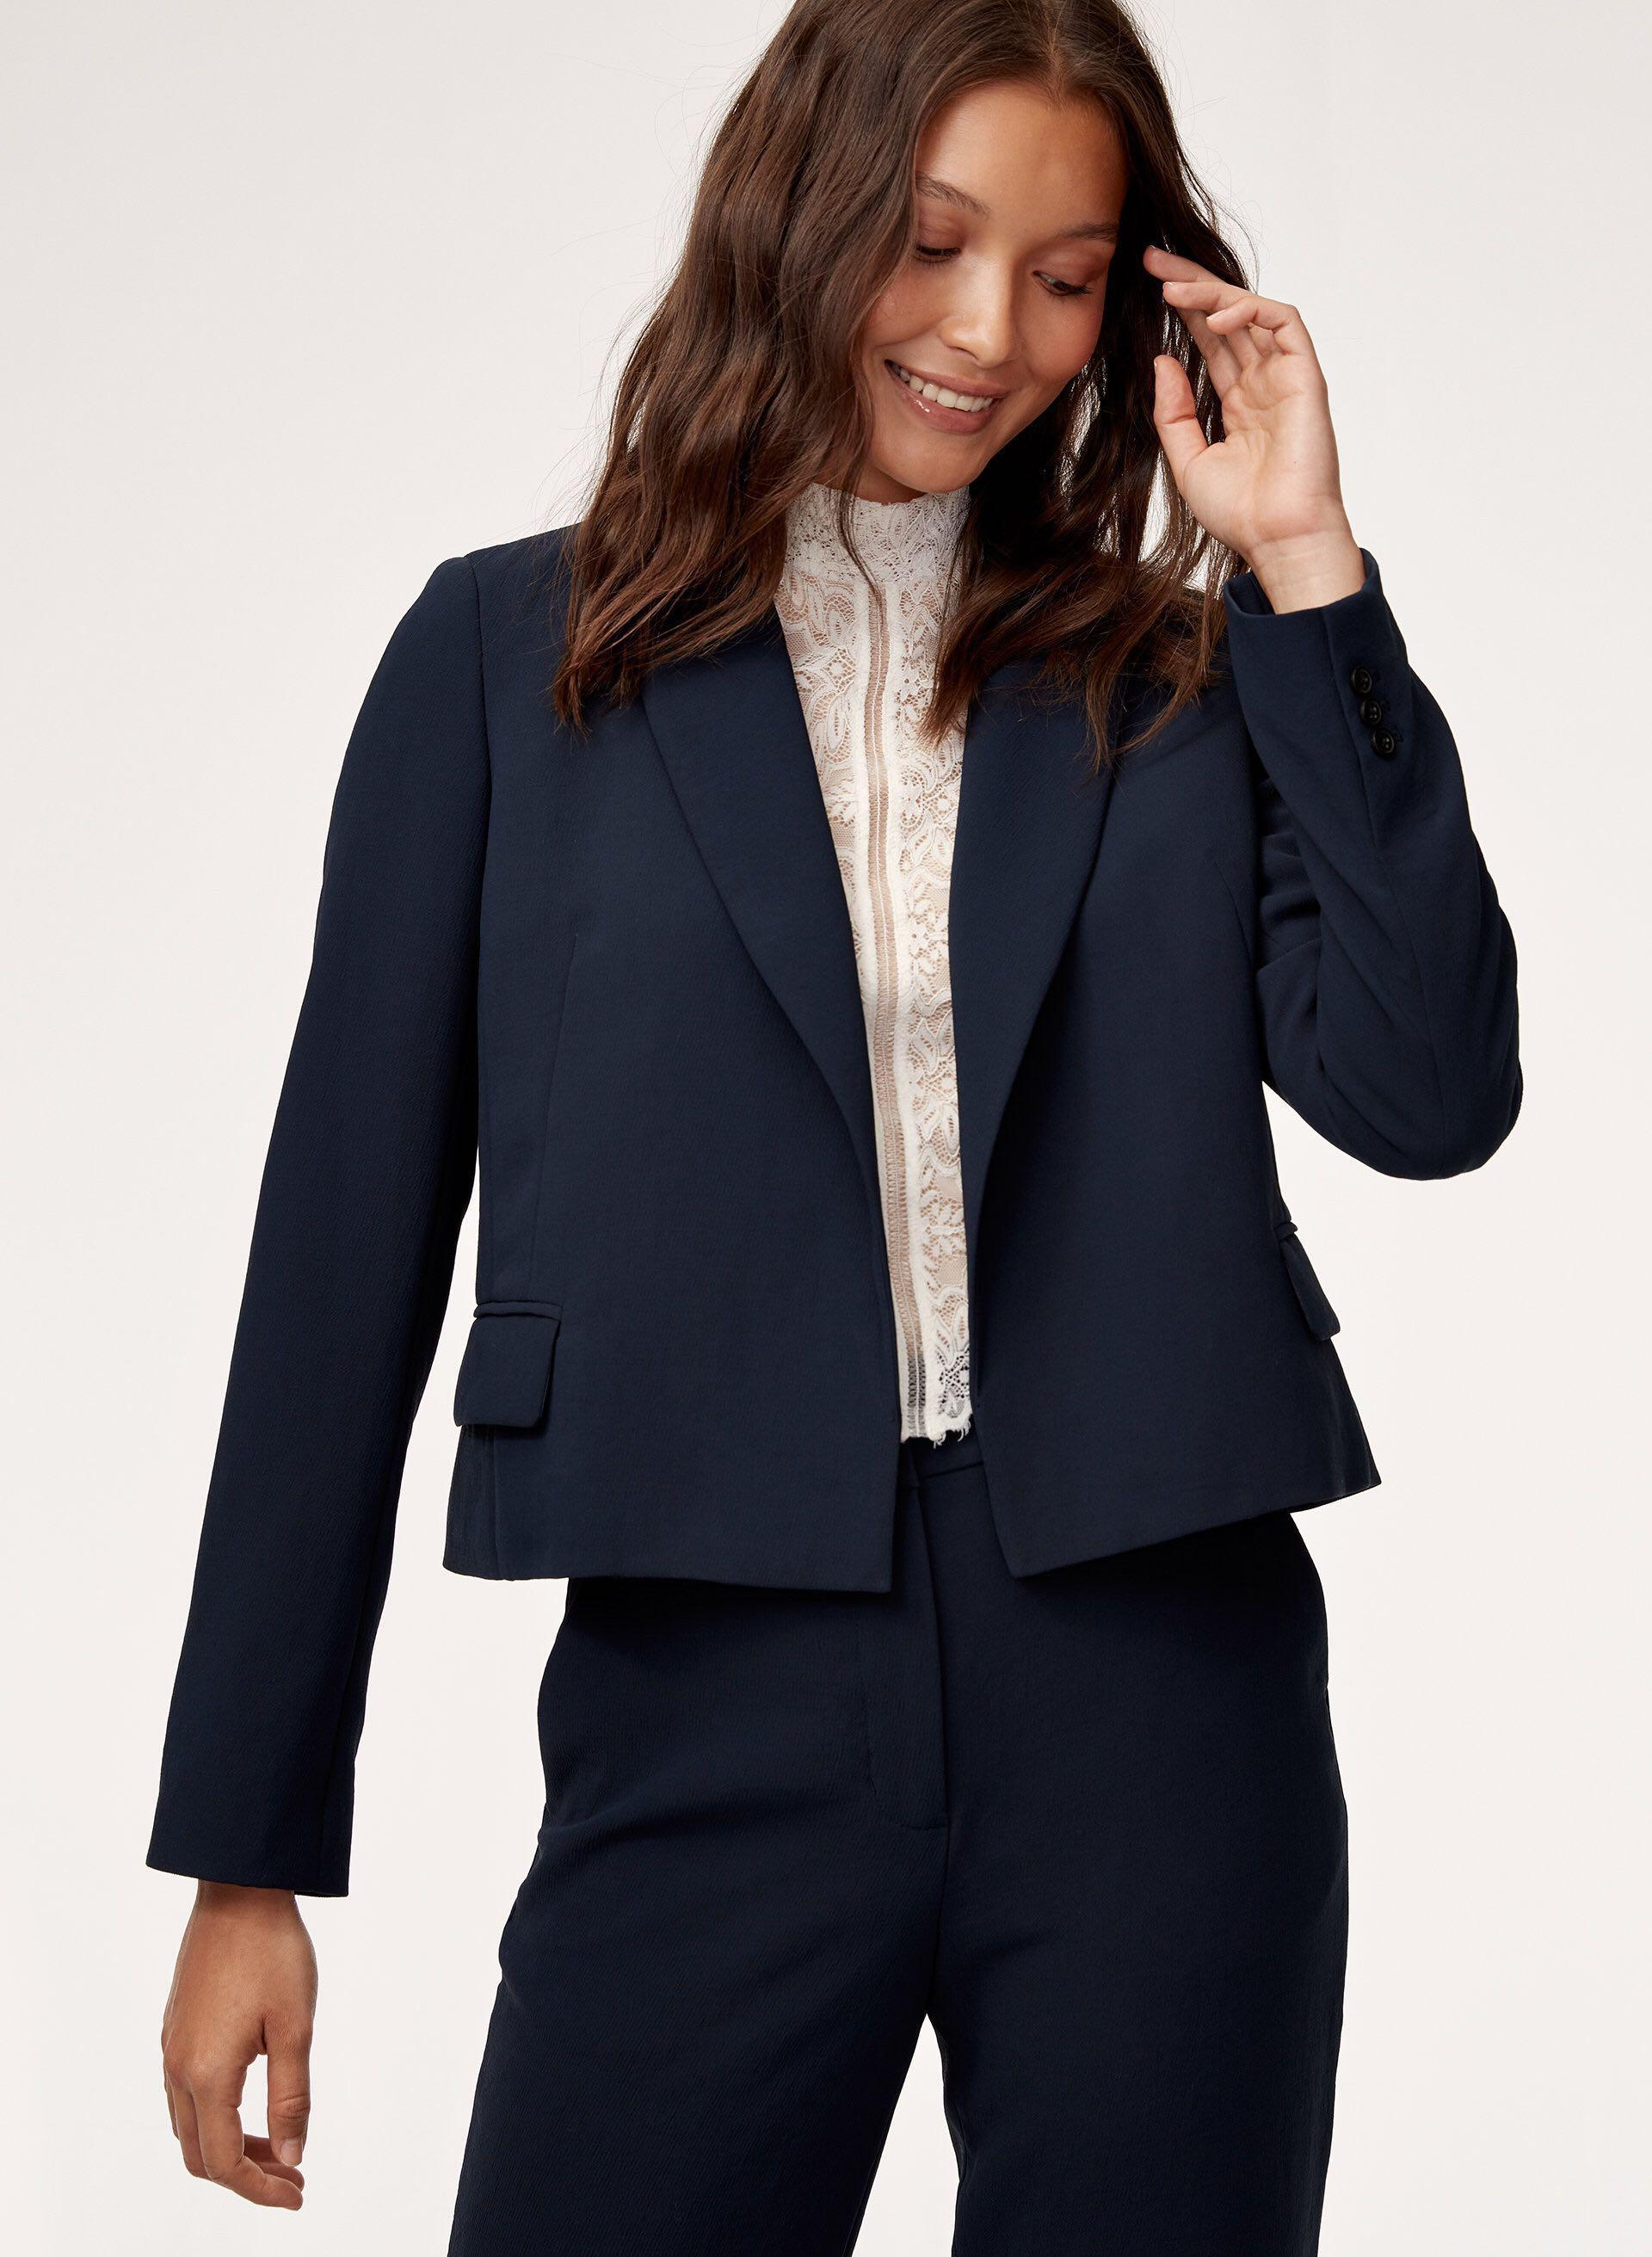 NEW Wilfred/Aritzia Blazer (size XXS) with tags (*MUST BUY WITH JANELLE PANT*)